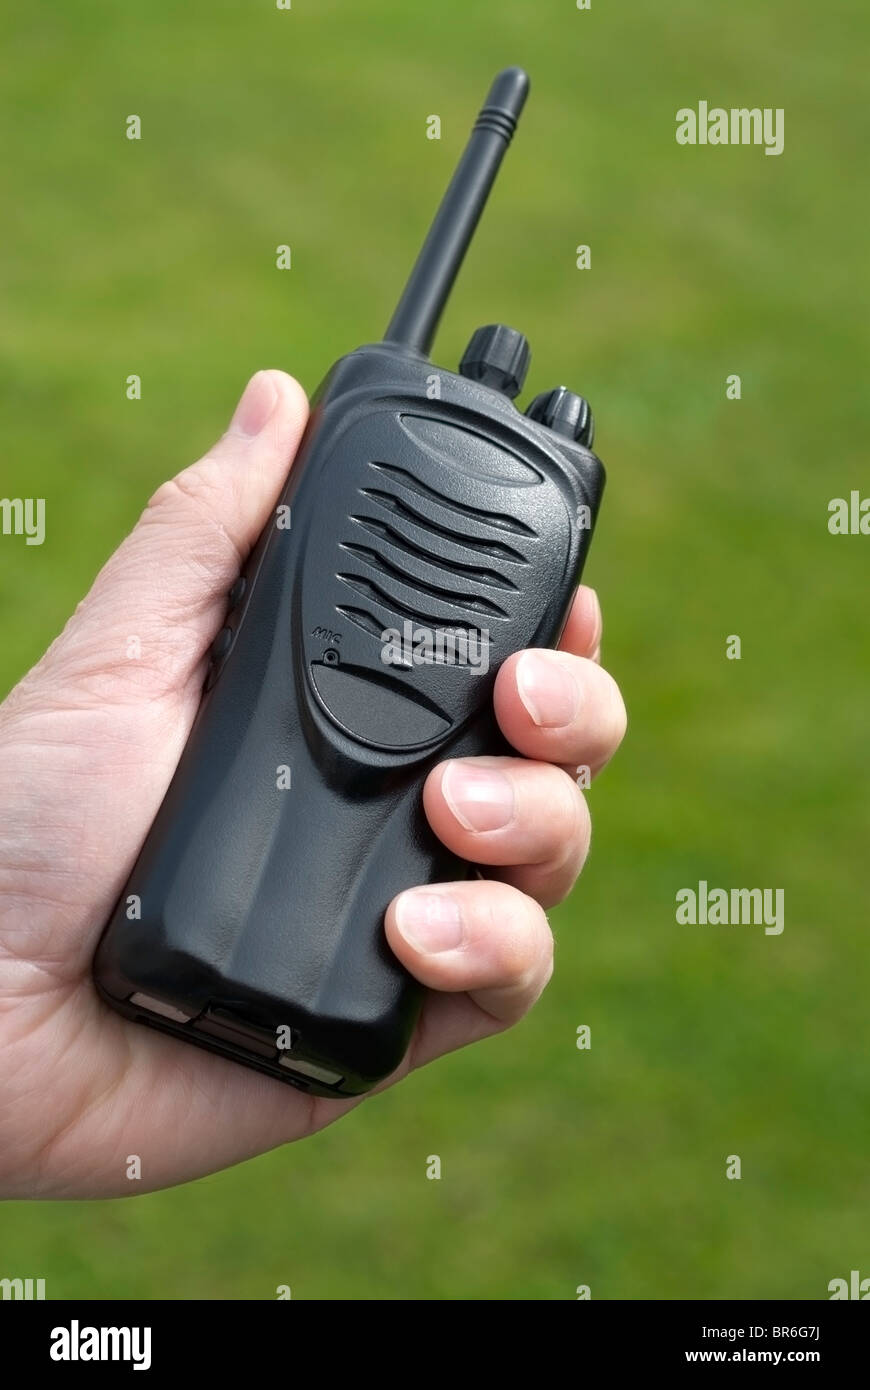 Hand Holding Walkie Talkie - Stock Image